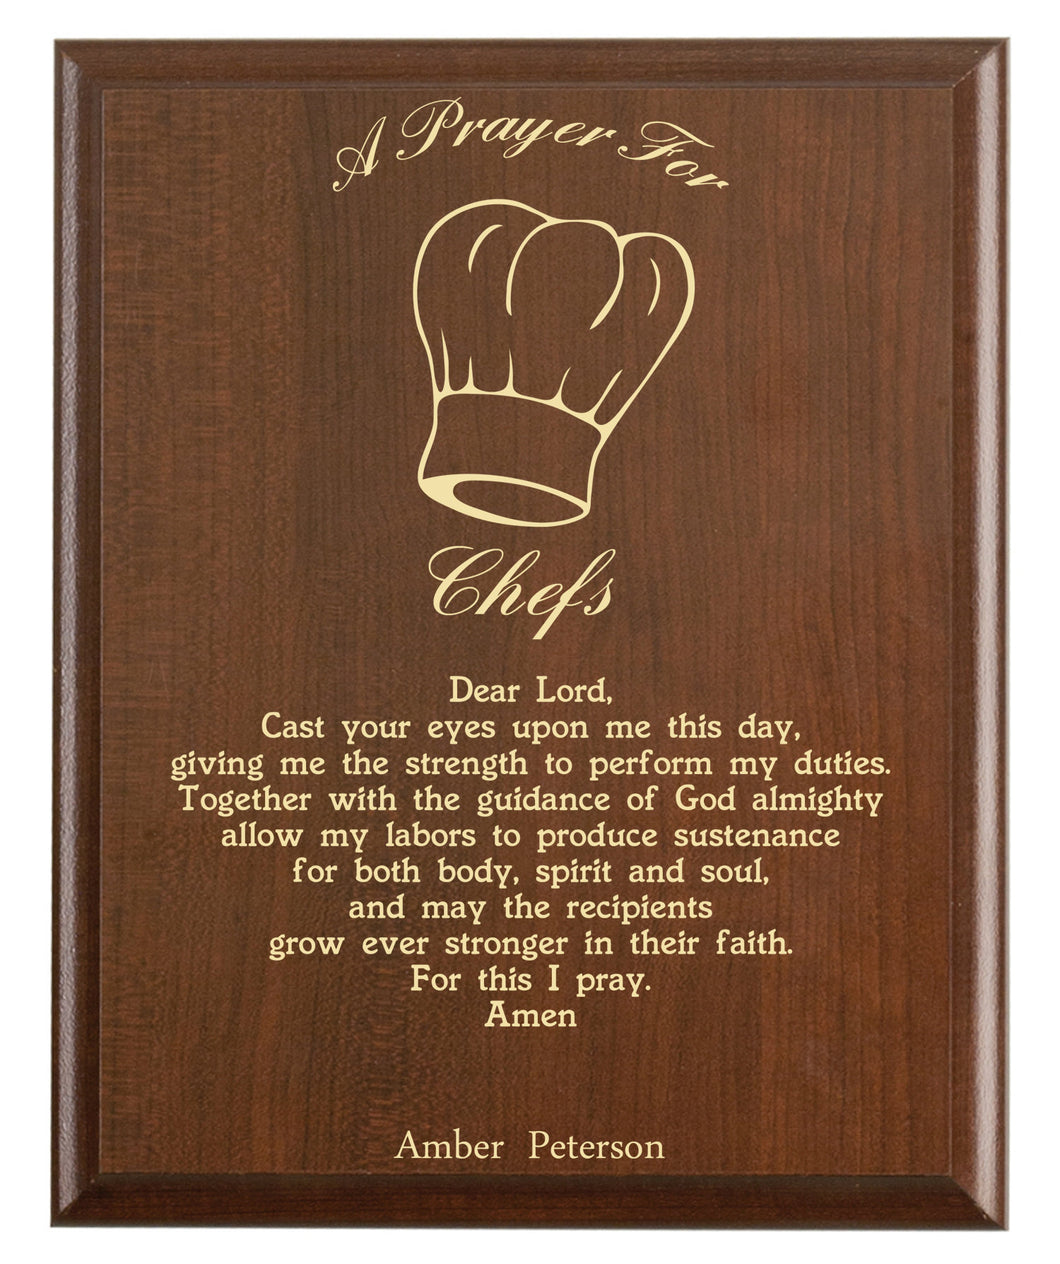 Christian prayer for a chef with industry logo and free personalization. Cherry finish with laser engraved text.